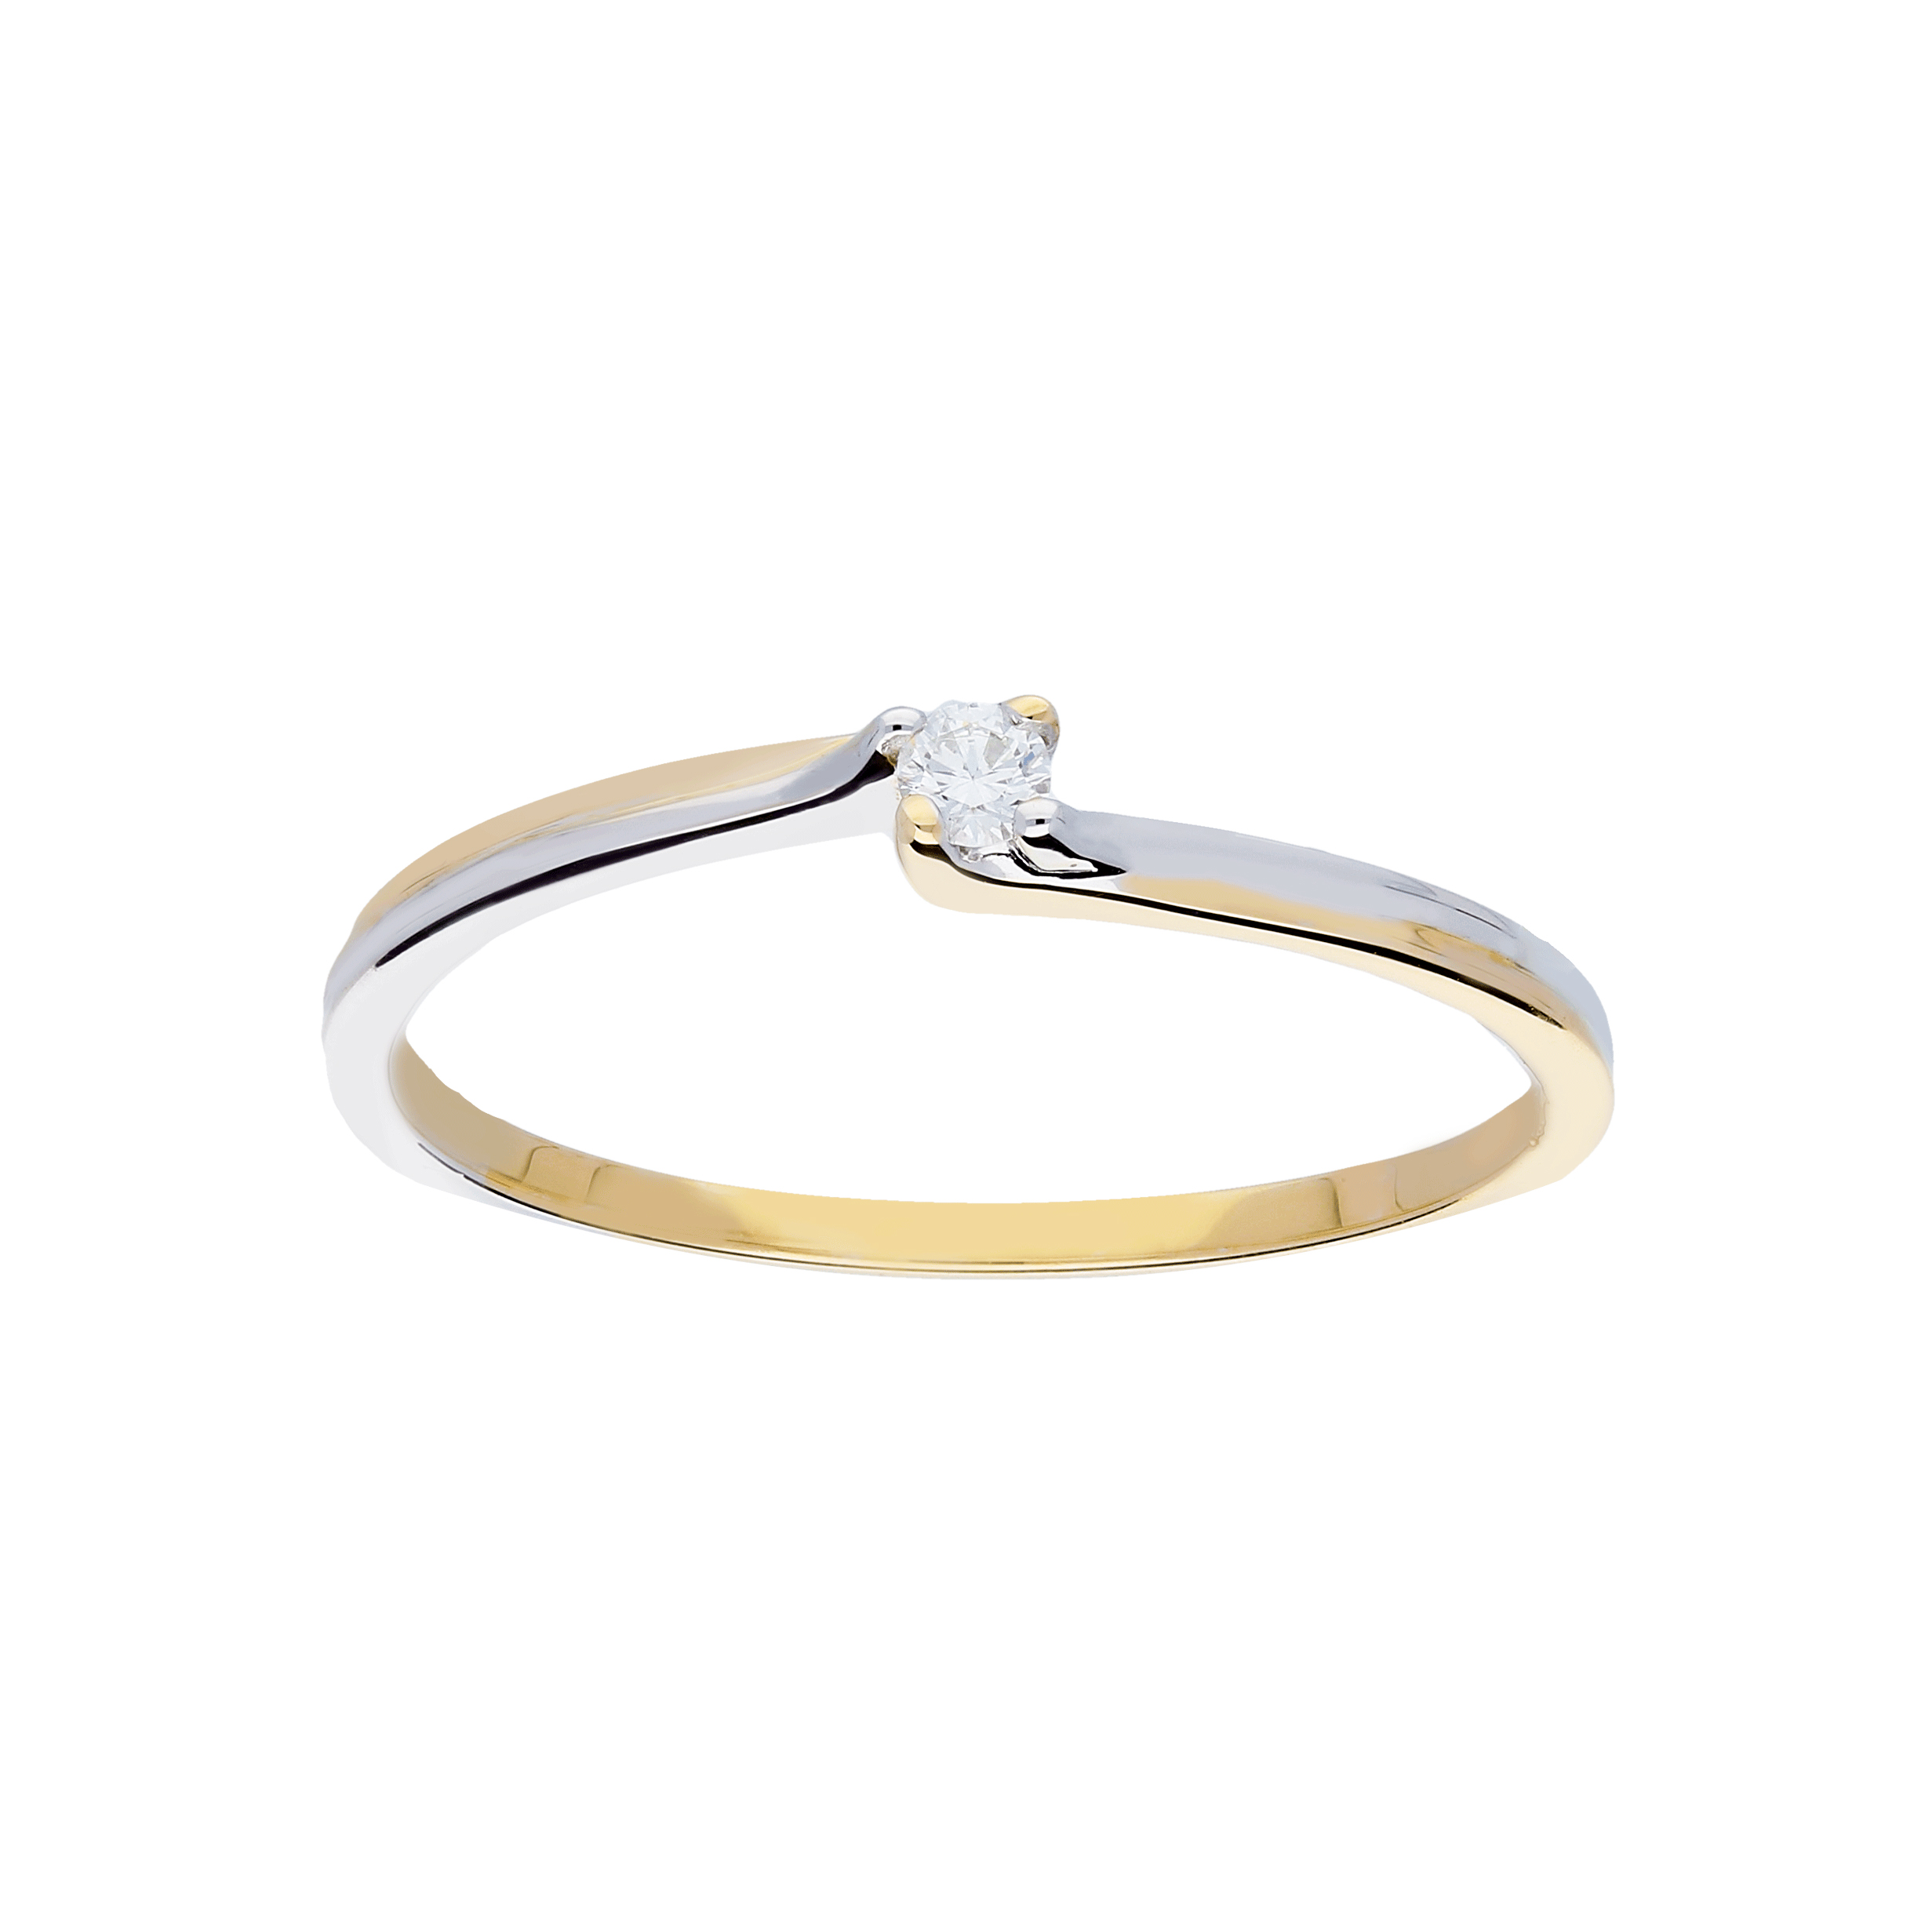 Glow Gouden Ring Bicolor Glanzend Diamant 1 0.04ct G si 214.5229.56